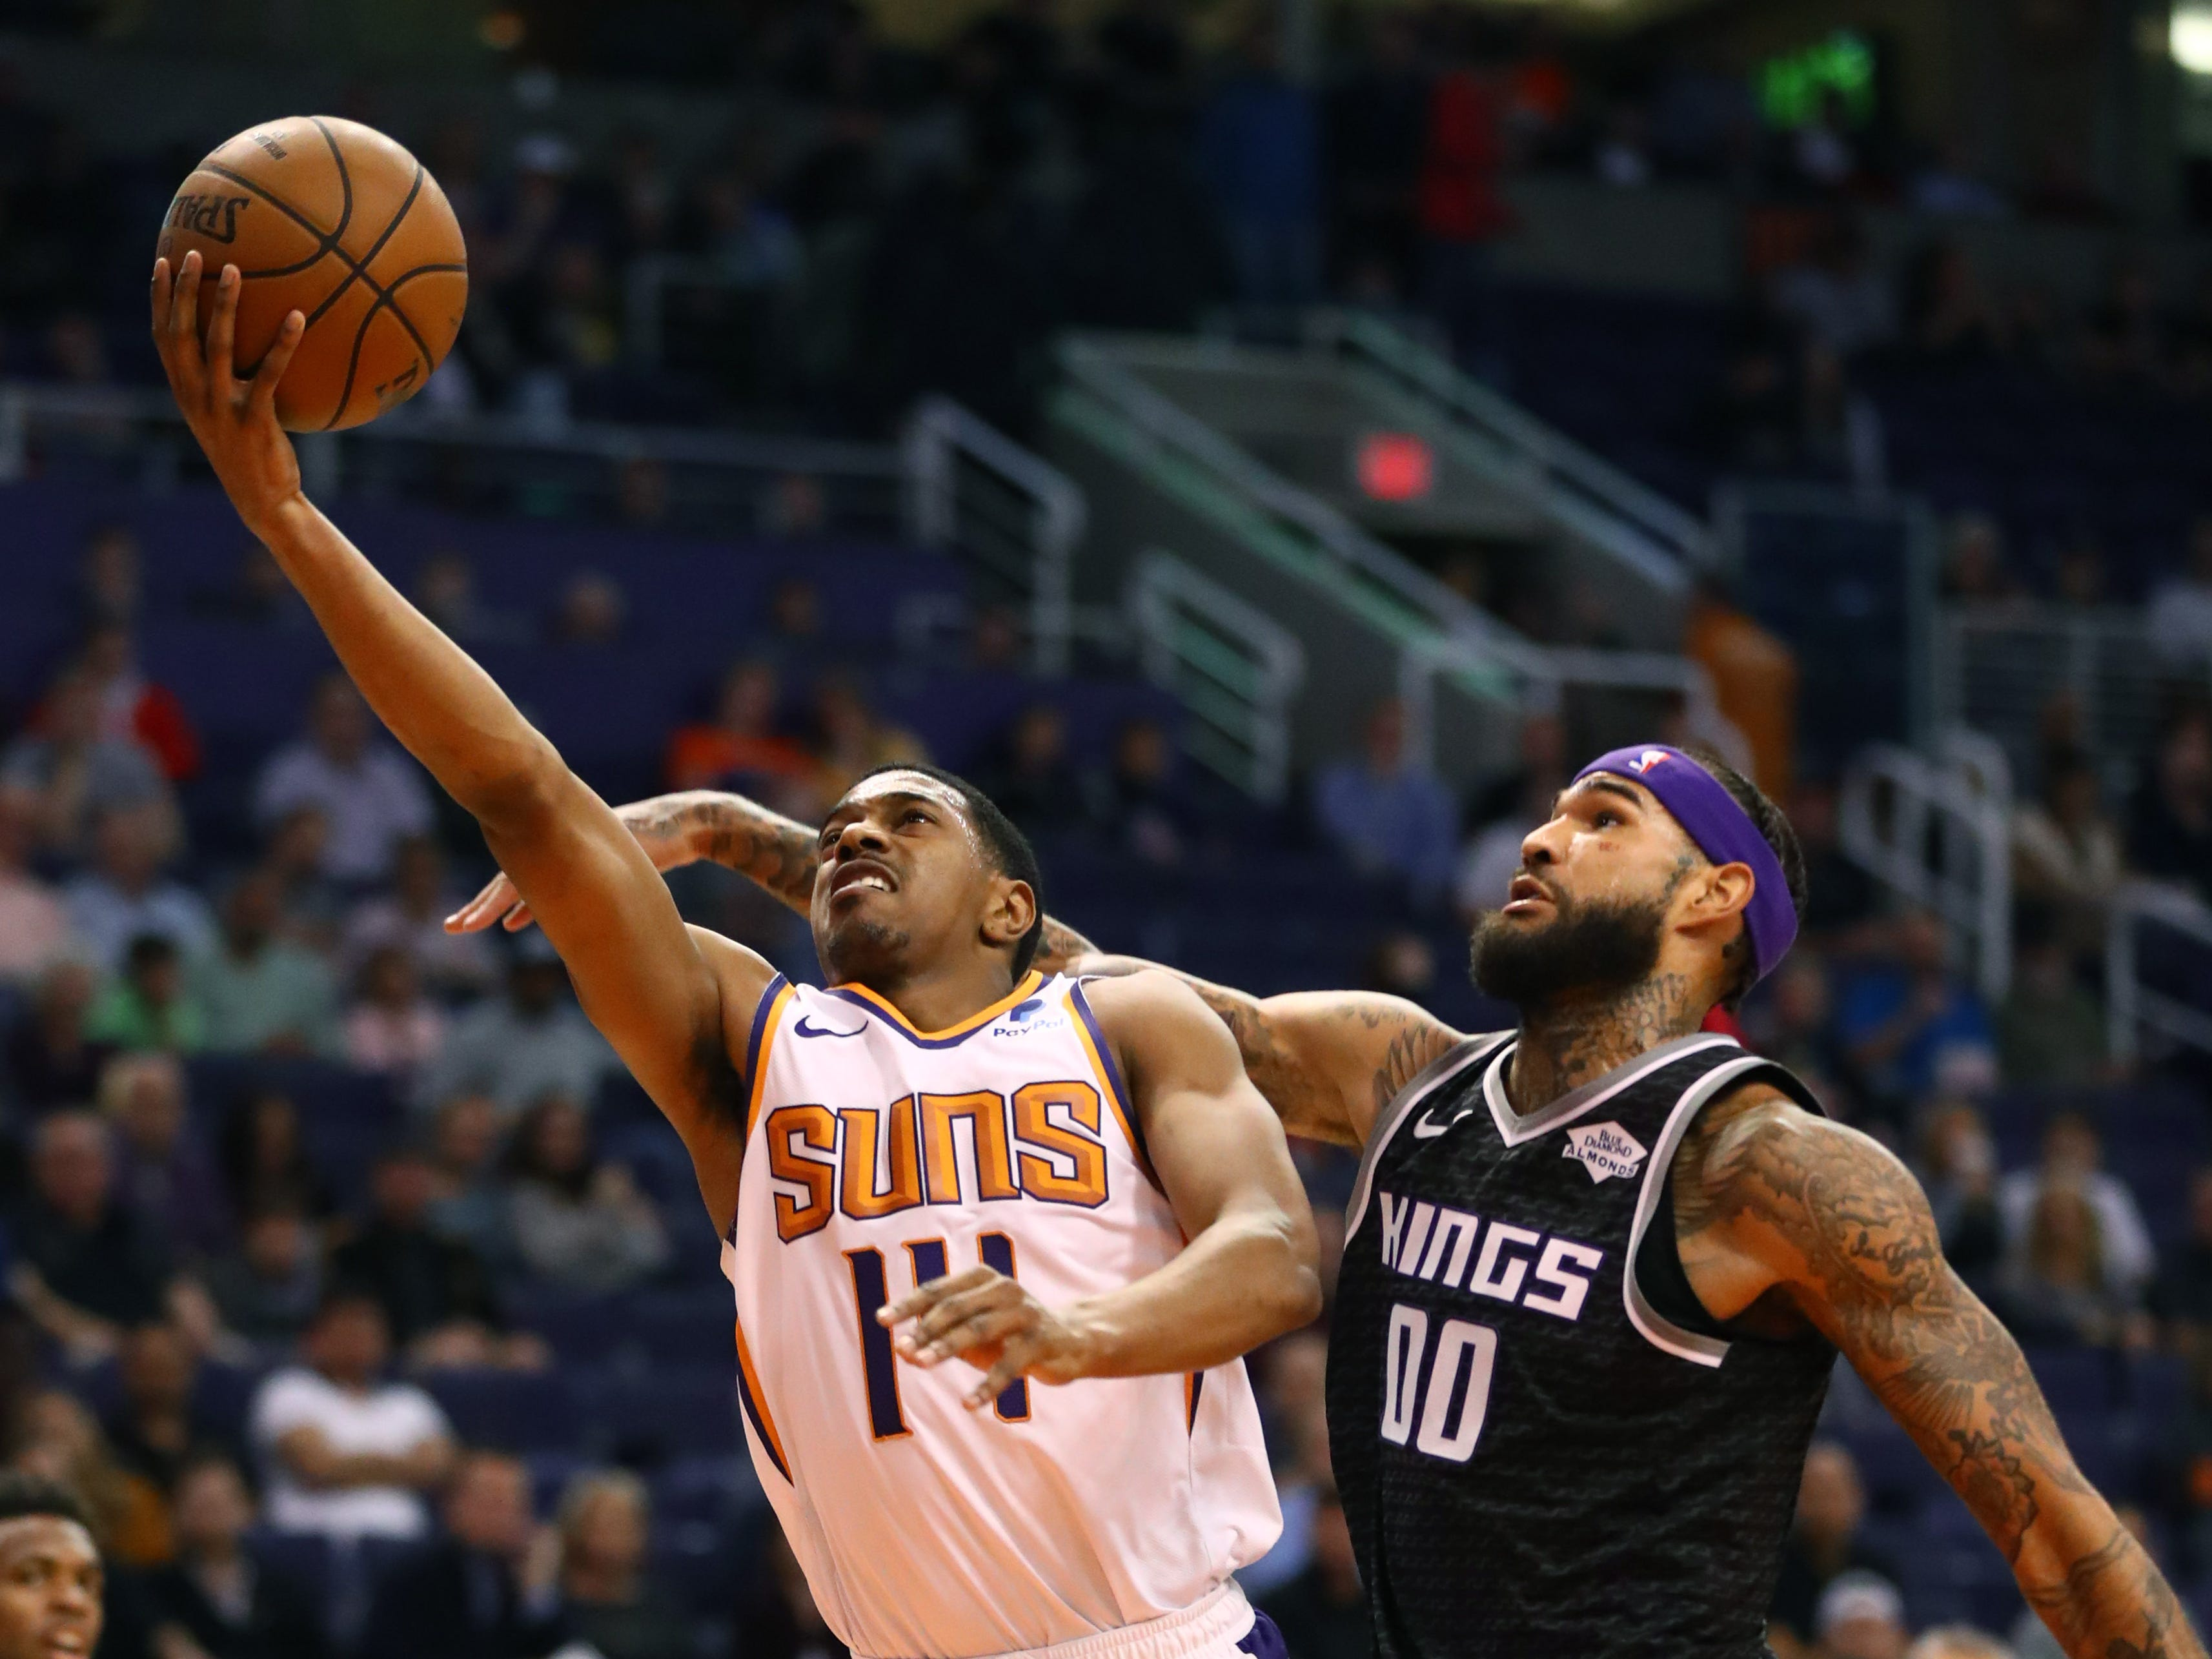 Jan 8, 2019; Phoenix, AZ, USA; Phoenix Suns guard De'Anthony Melton drives to the basket against Sacramento Kings center Willie Cauley-Stein in the first half at Talking Stick Resort Arena. Mandatory Credit: Mark J. Rebilas-USA TODAY Sports